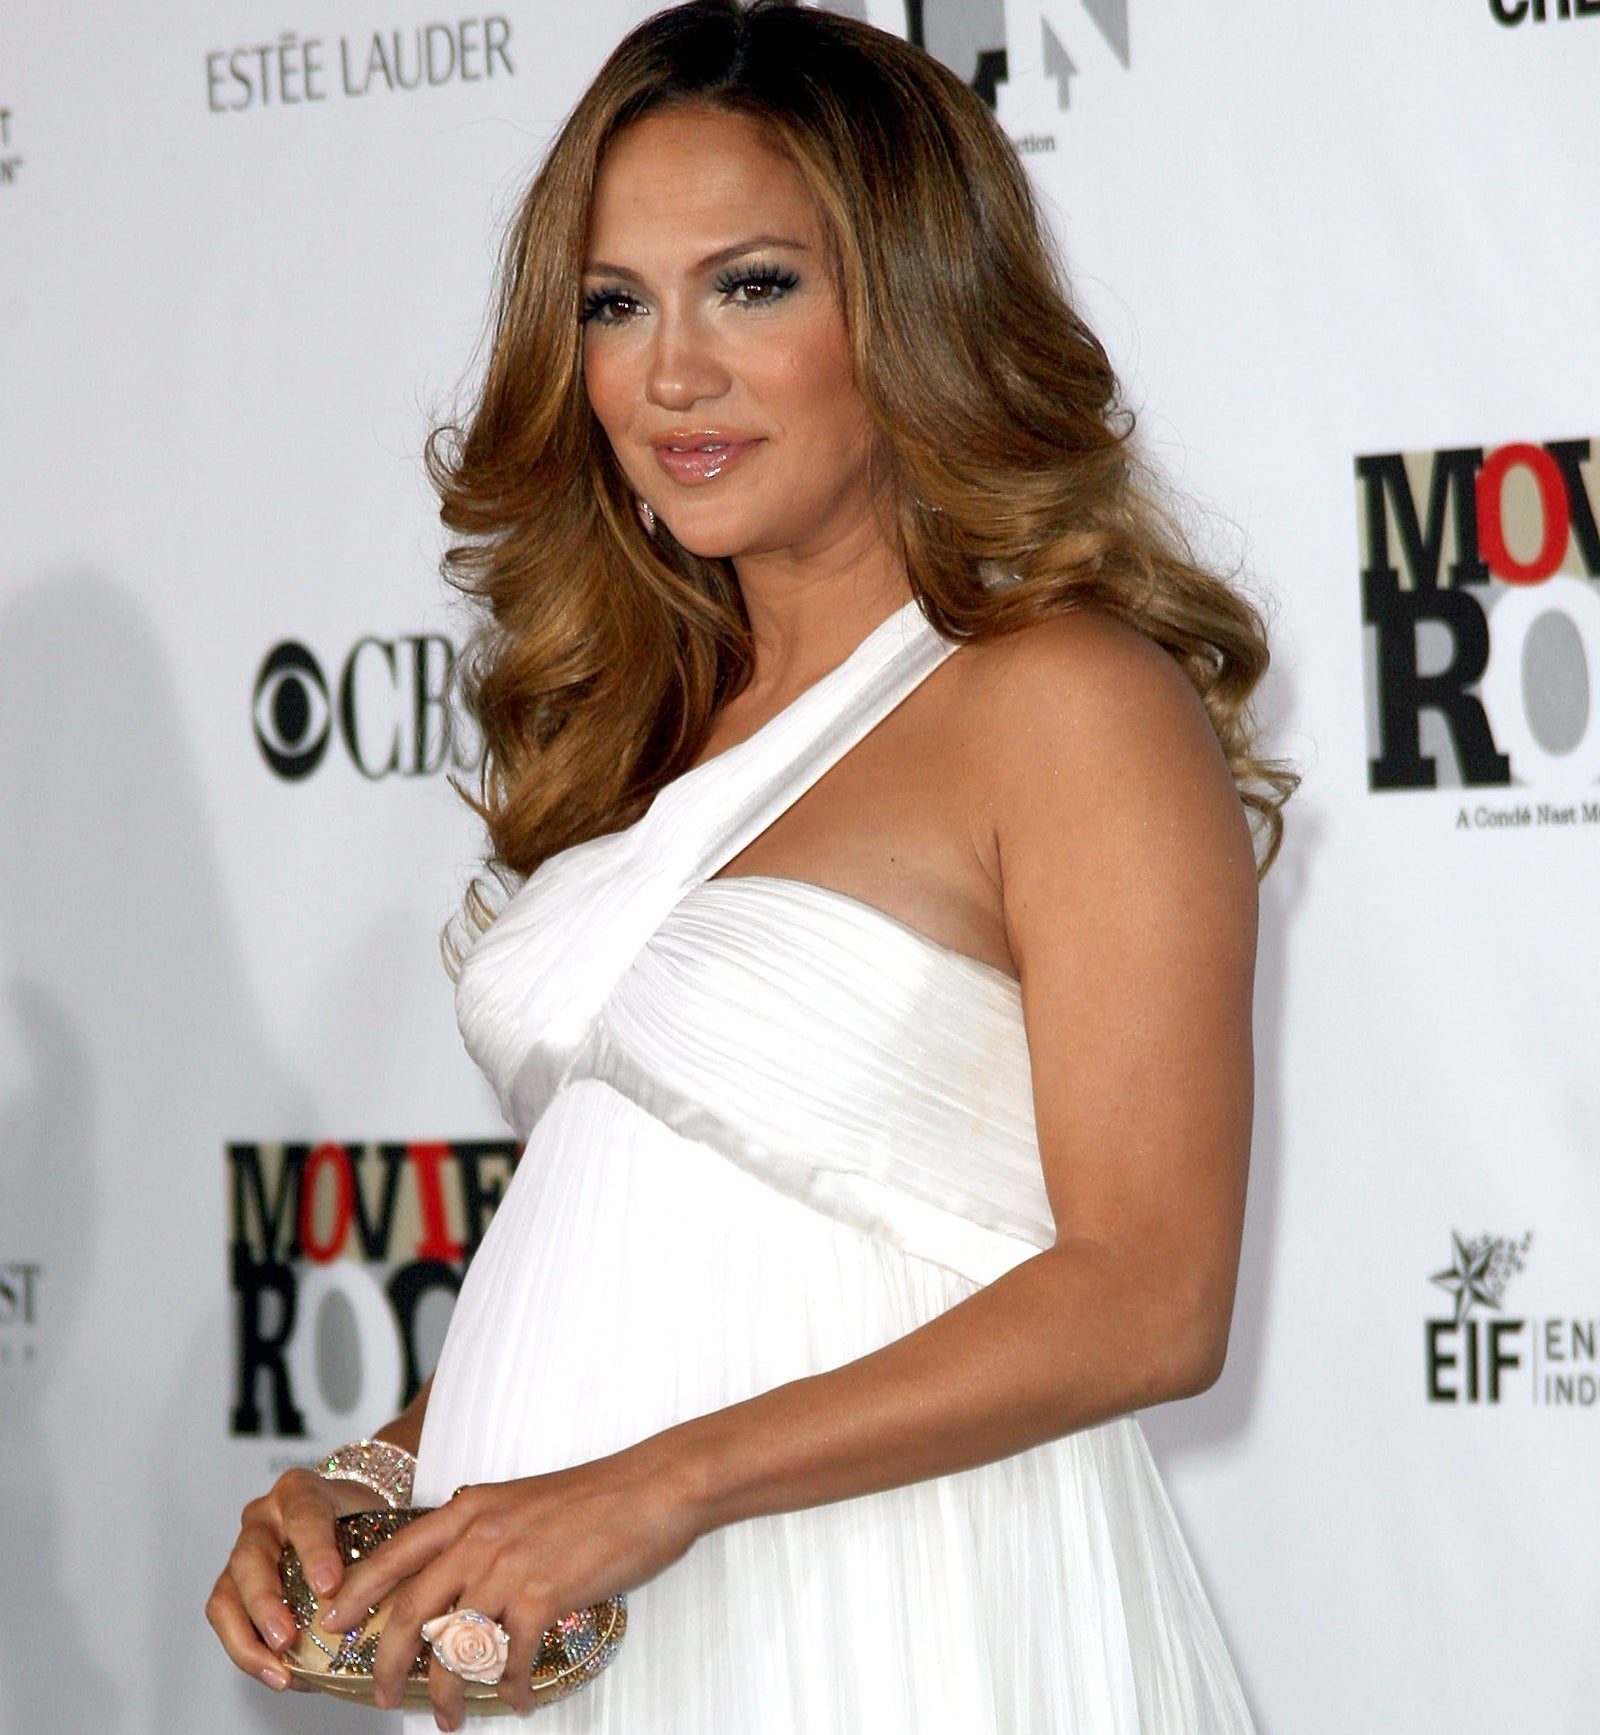 Jennifer Lopez gave birth to twins: son Maximilian David and daughter Emme Maribel.